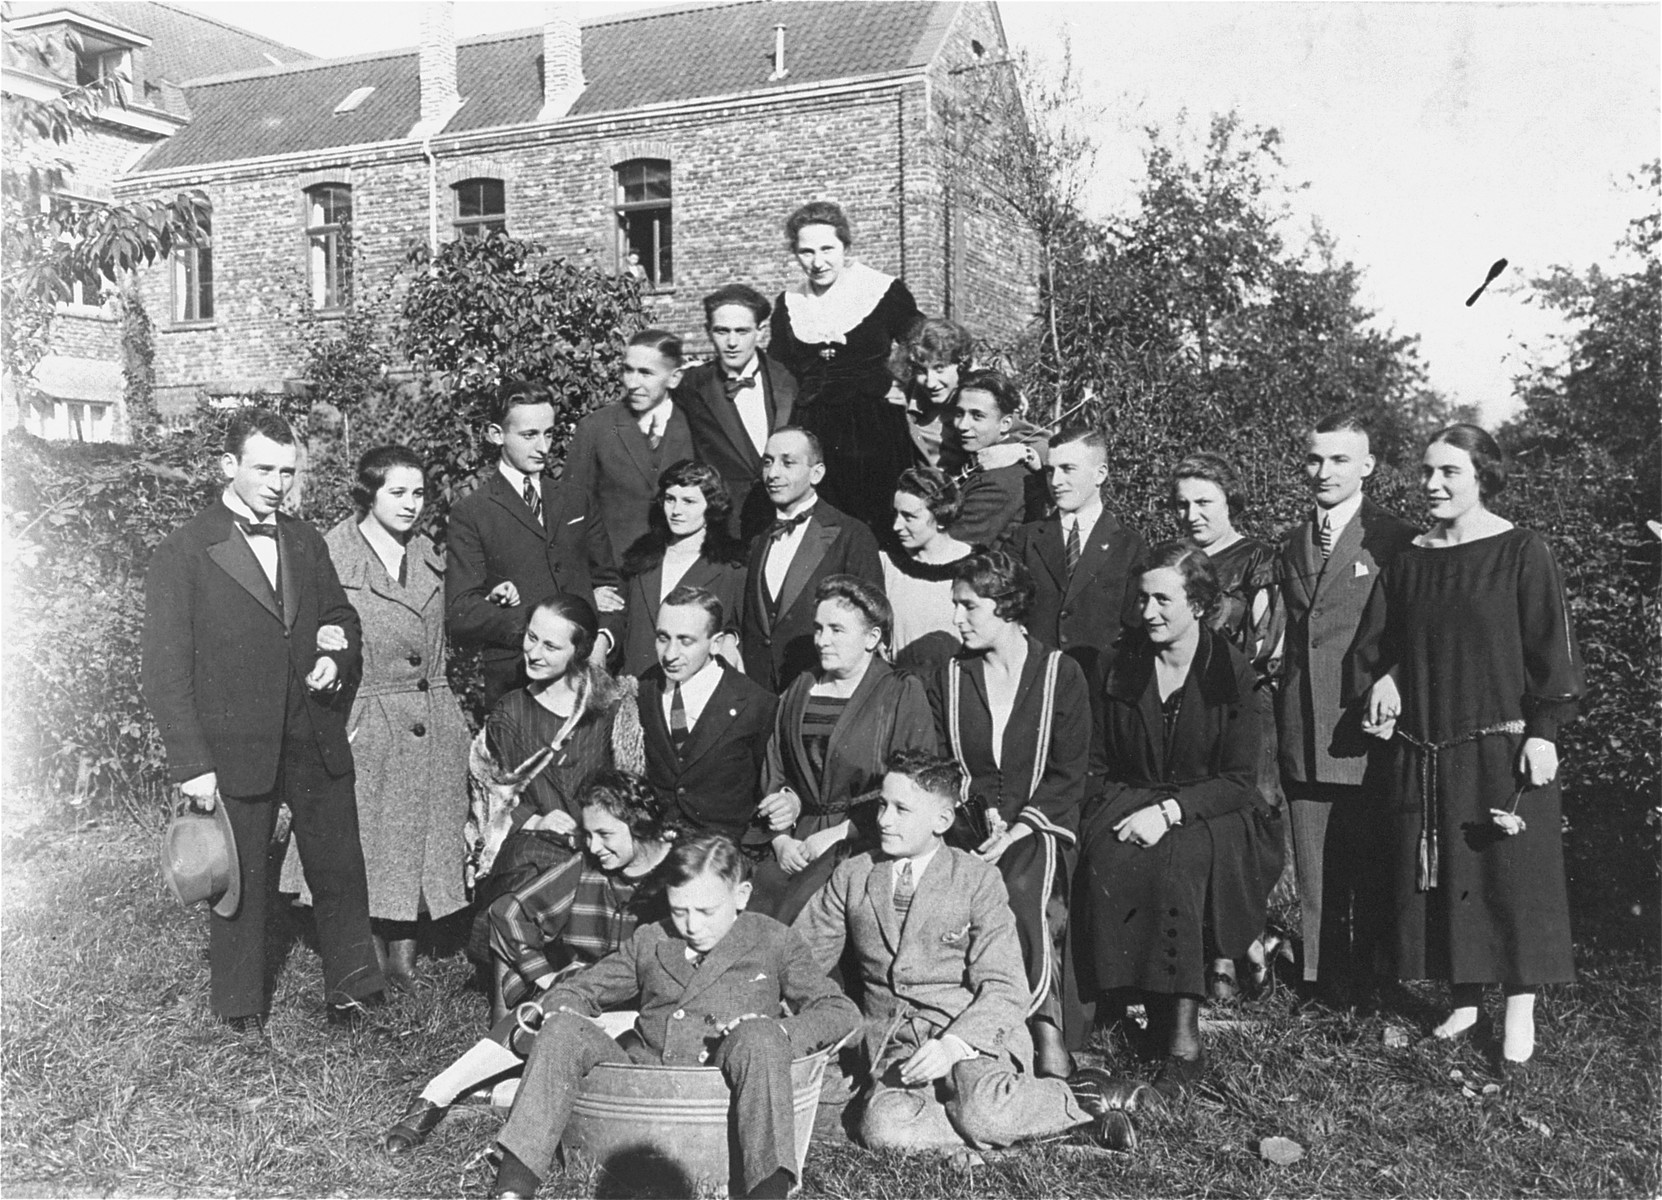 Group portrait of members of an extended Jewish family at a family gathering.    Pictured are members of the Hermans and Meyer families.  The only survivors of the two families were Henrietta and Sol Meyer, who emigrated to the U.S. in 1939 and settled in Rutland, Vermont.